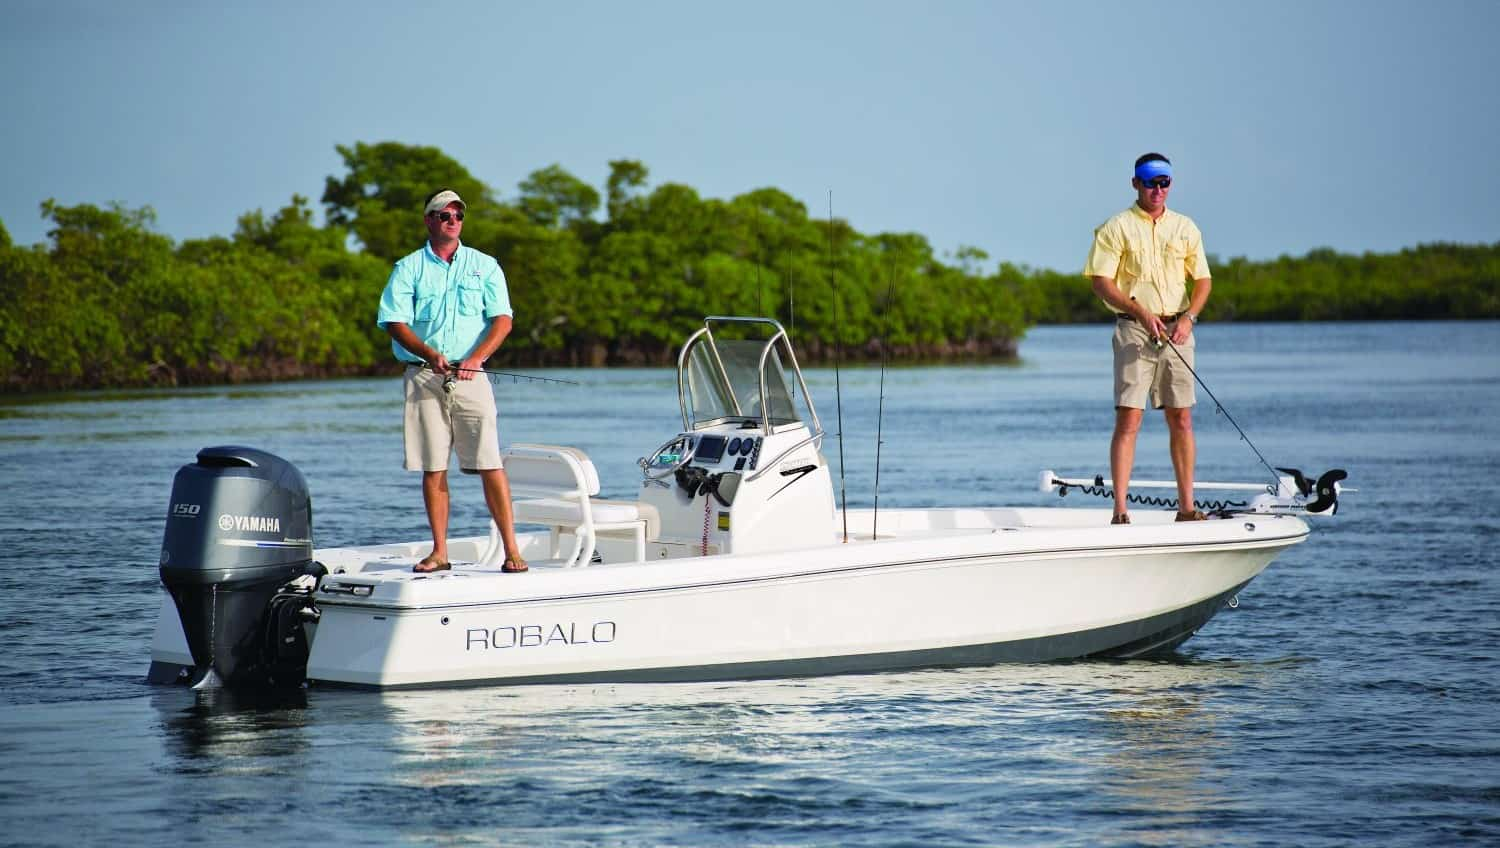 New  2022 20' Robalo 206 Cayman Boat Engine in Metairie,